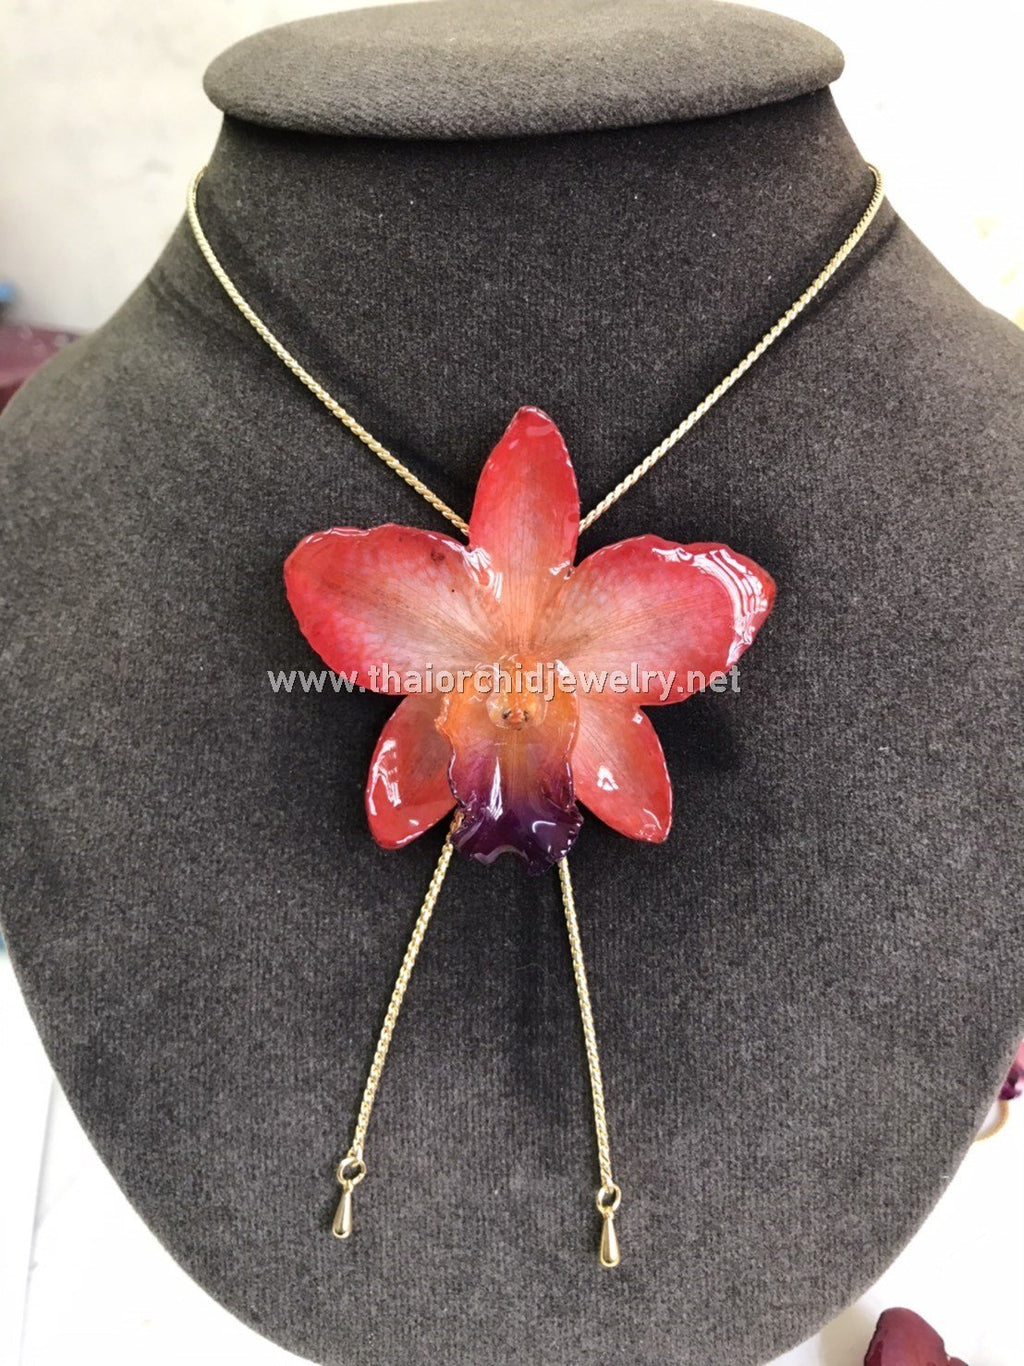 Cattleya Orchid Jewelry Slider Necklace Gold Plated 24K - RED ORANGE